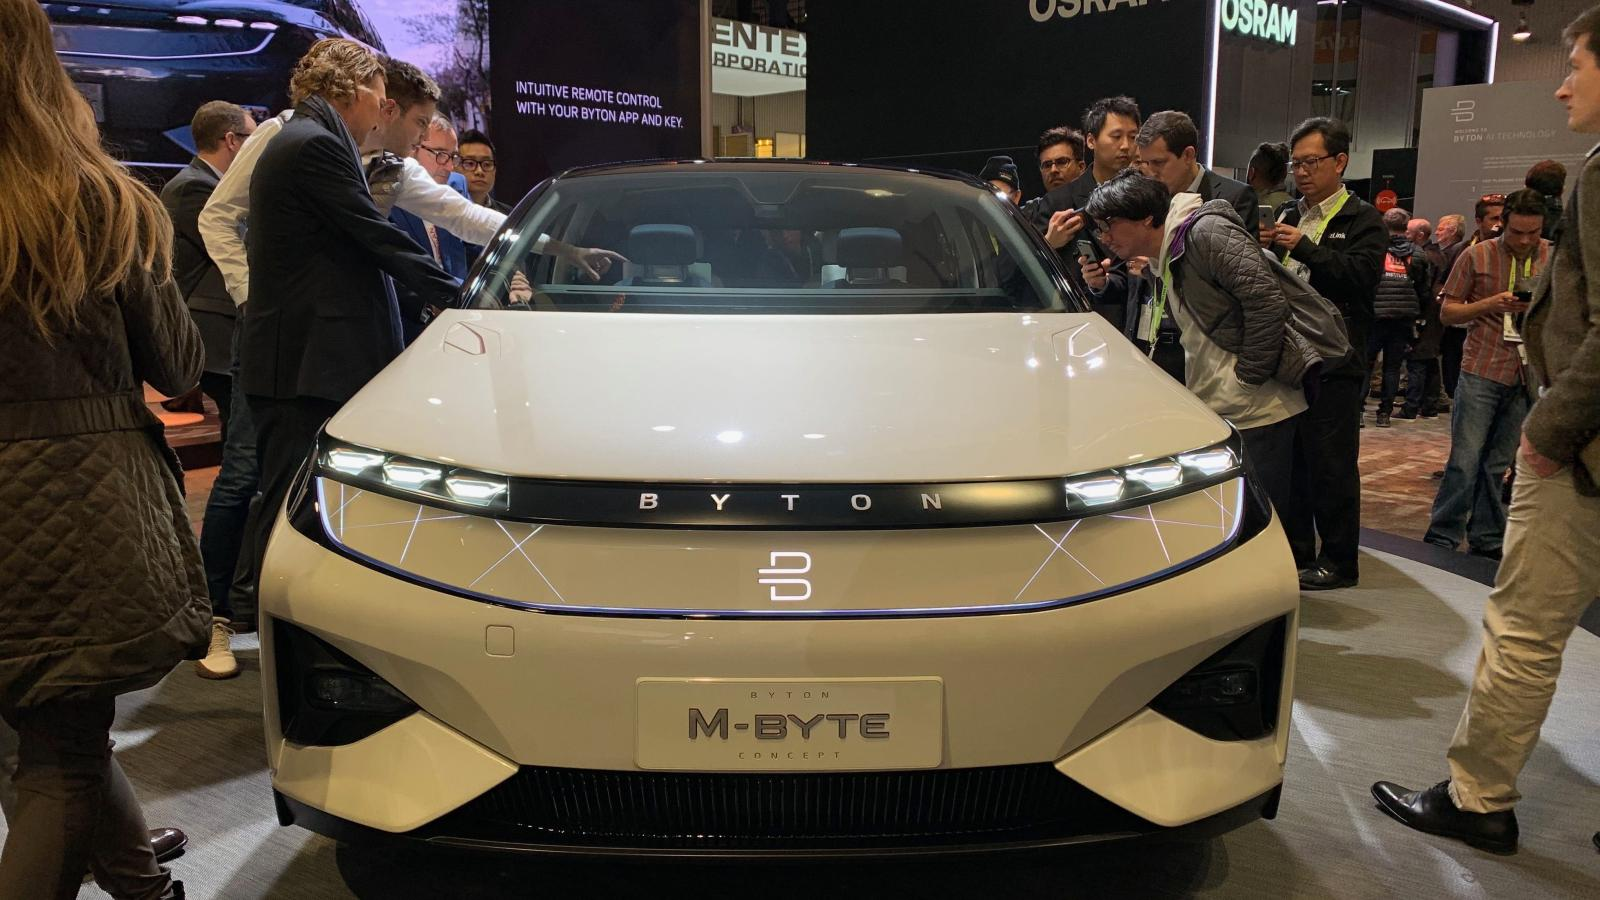 CES 2019: Byton is another billion-worth Chinese startup yet